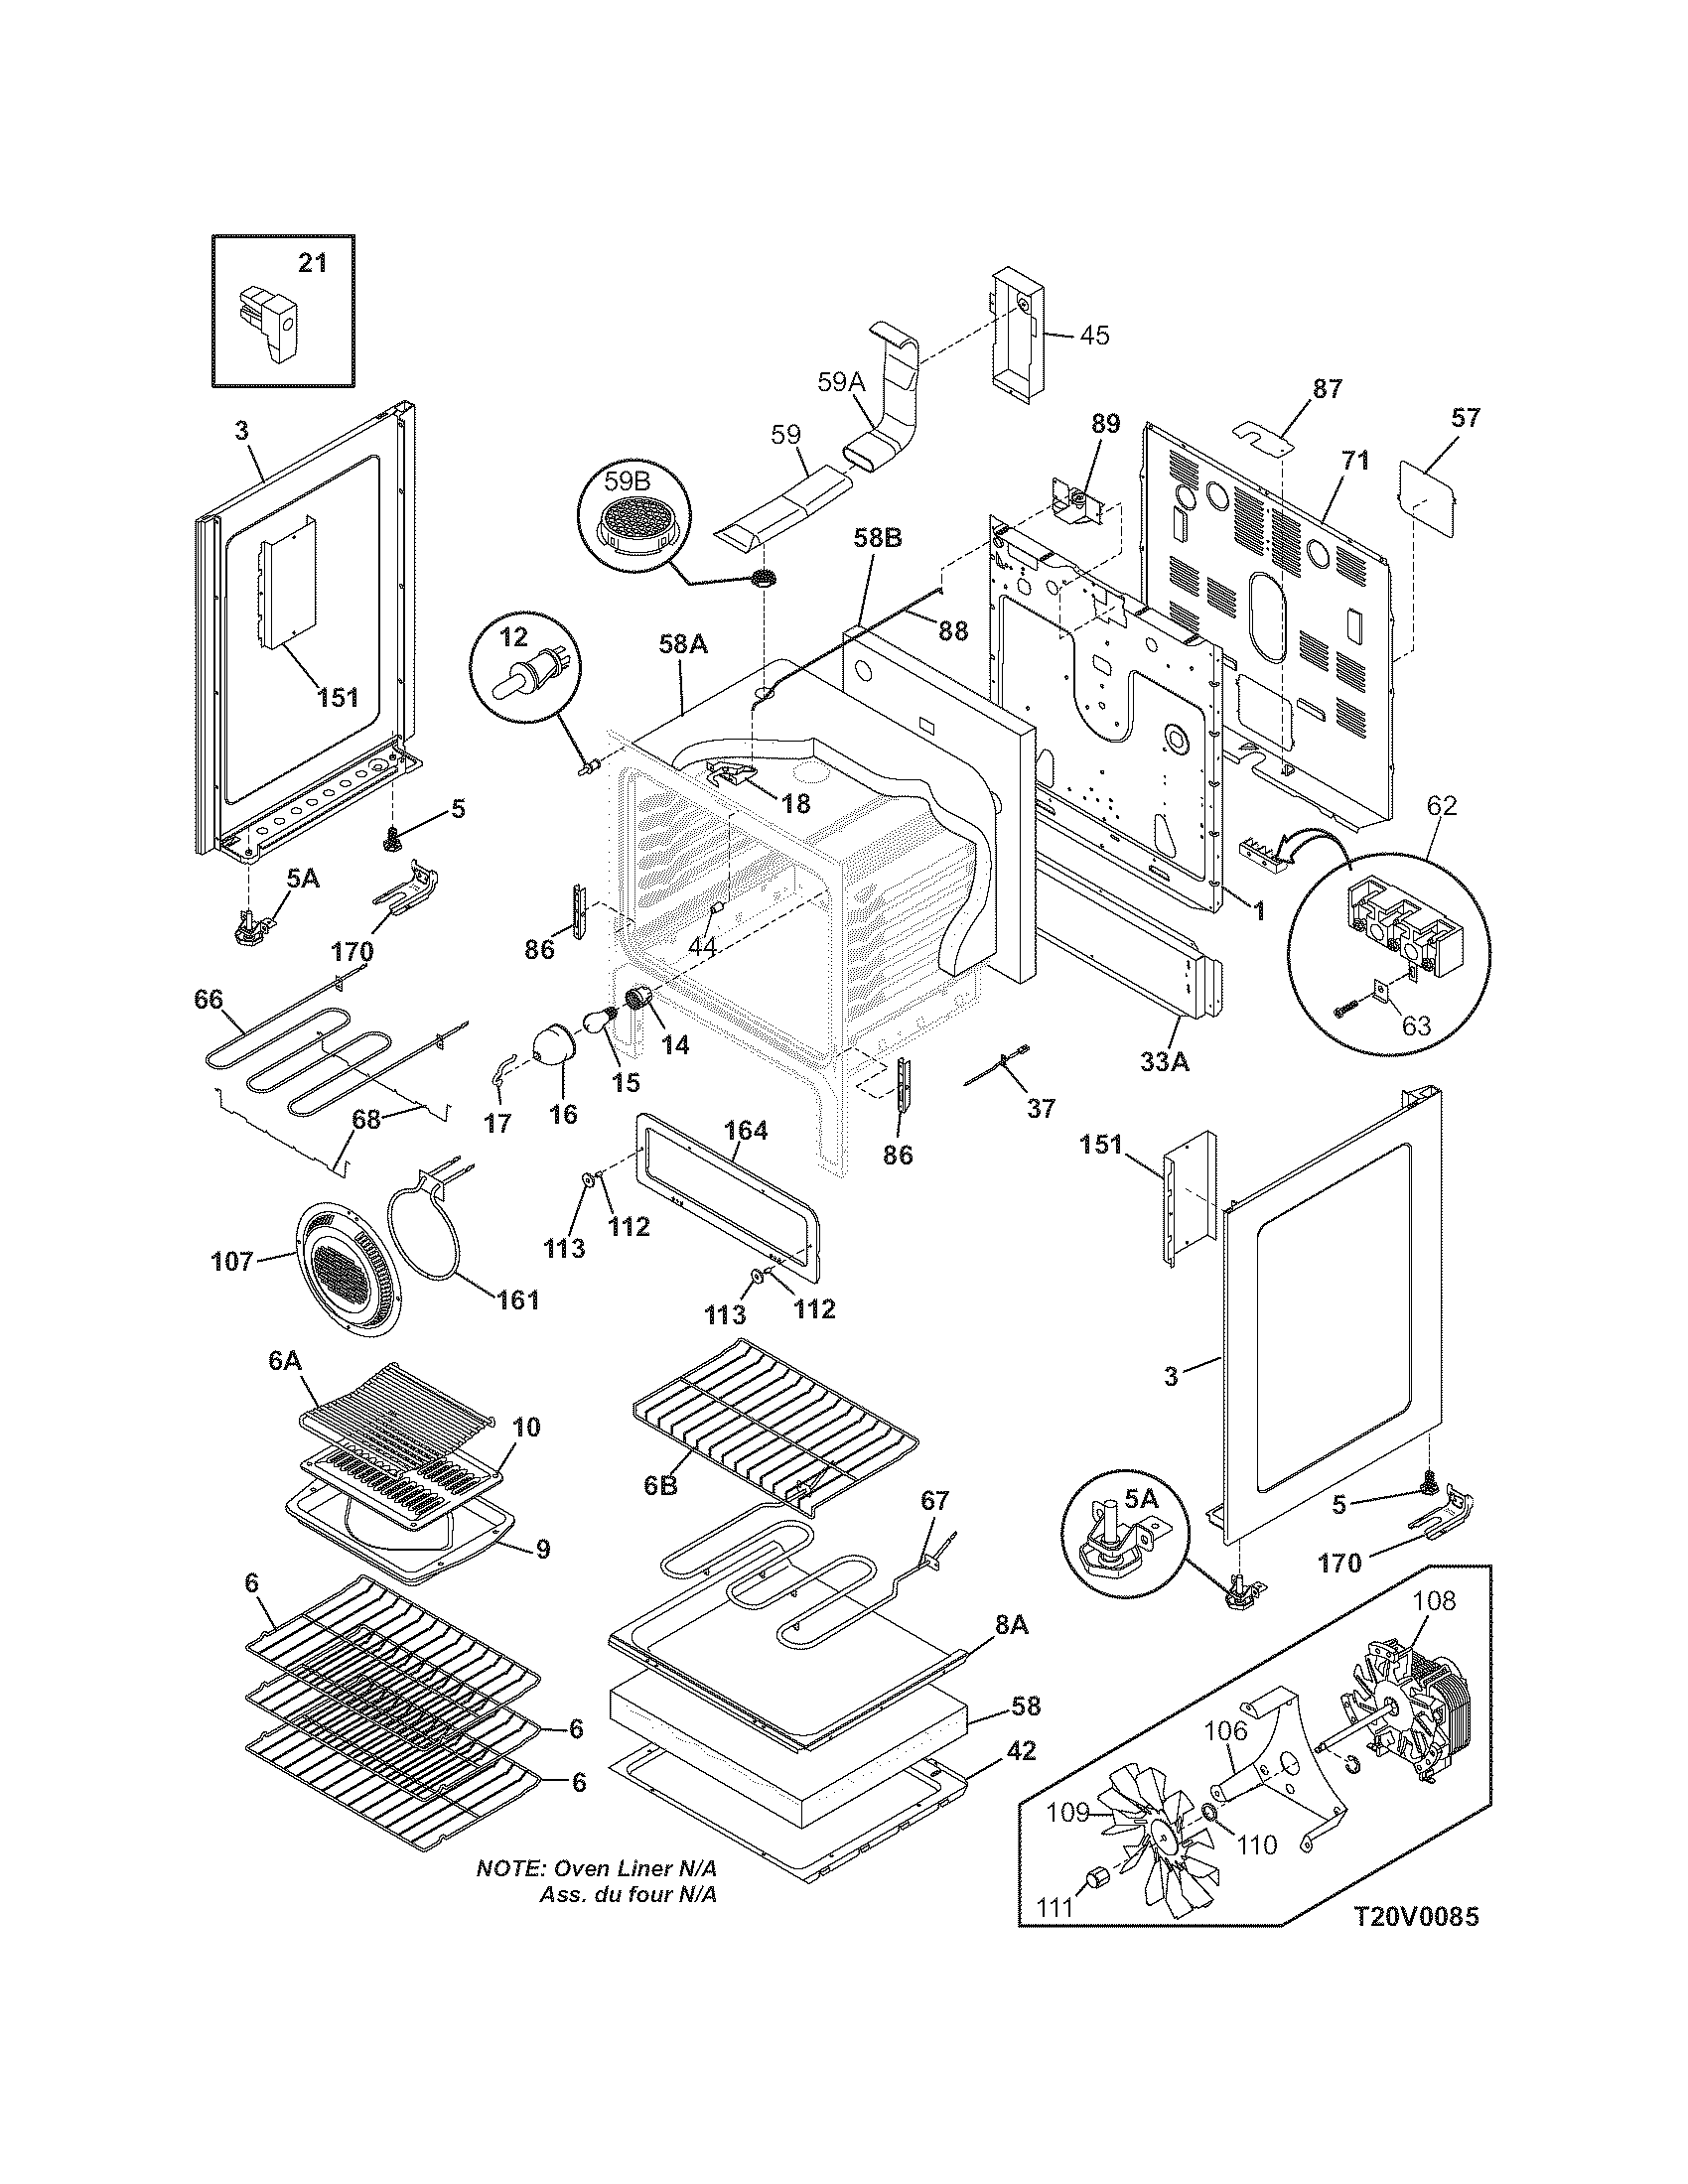 electrolux refrigerator wiring diagram  electrolux  free engine image for user manual download